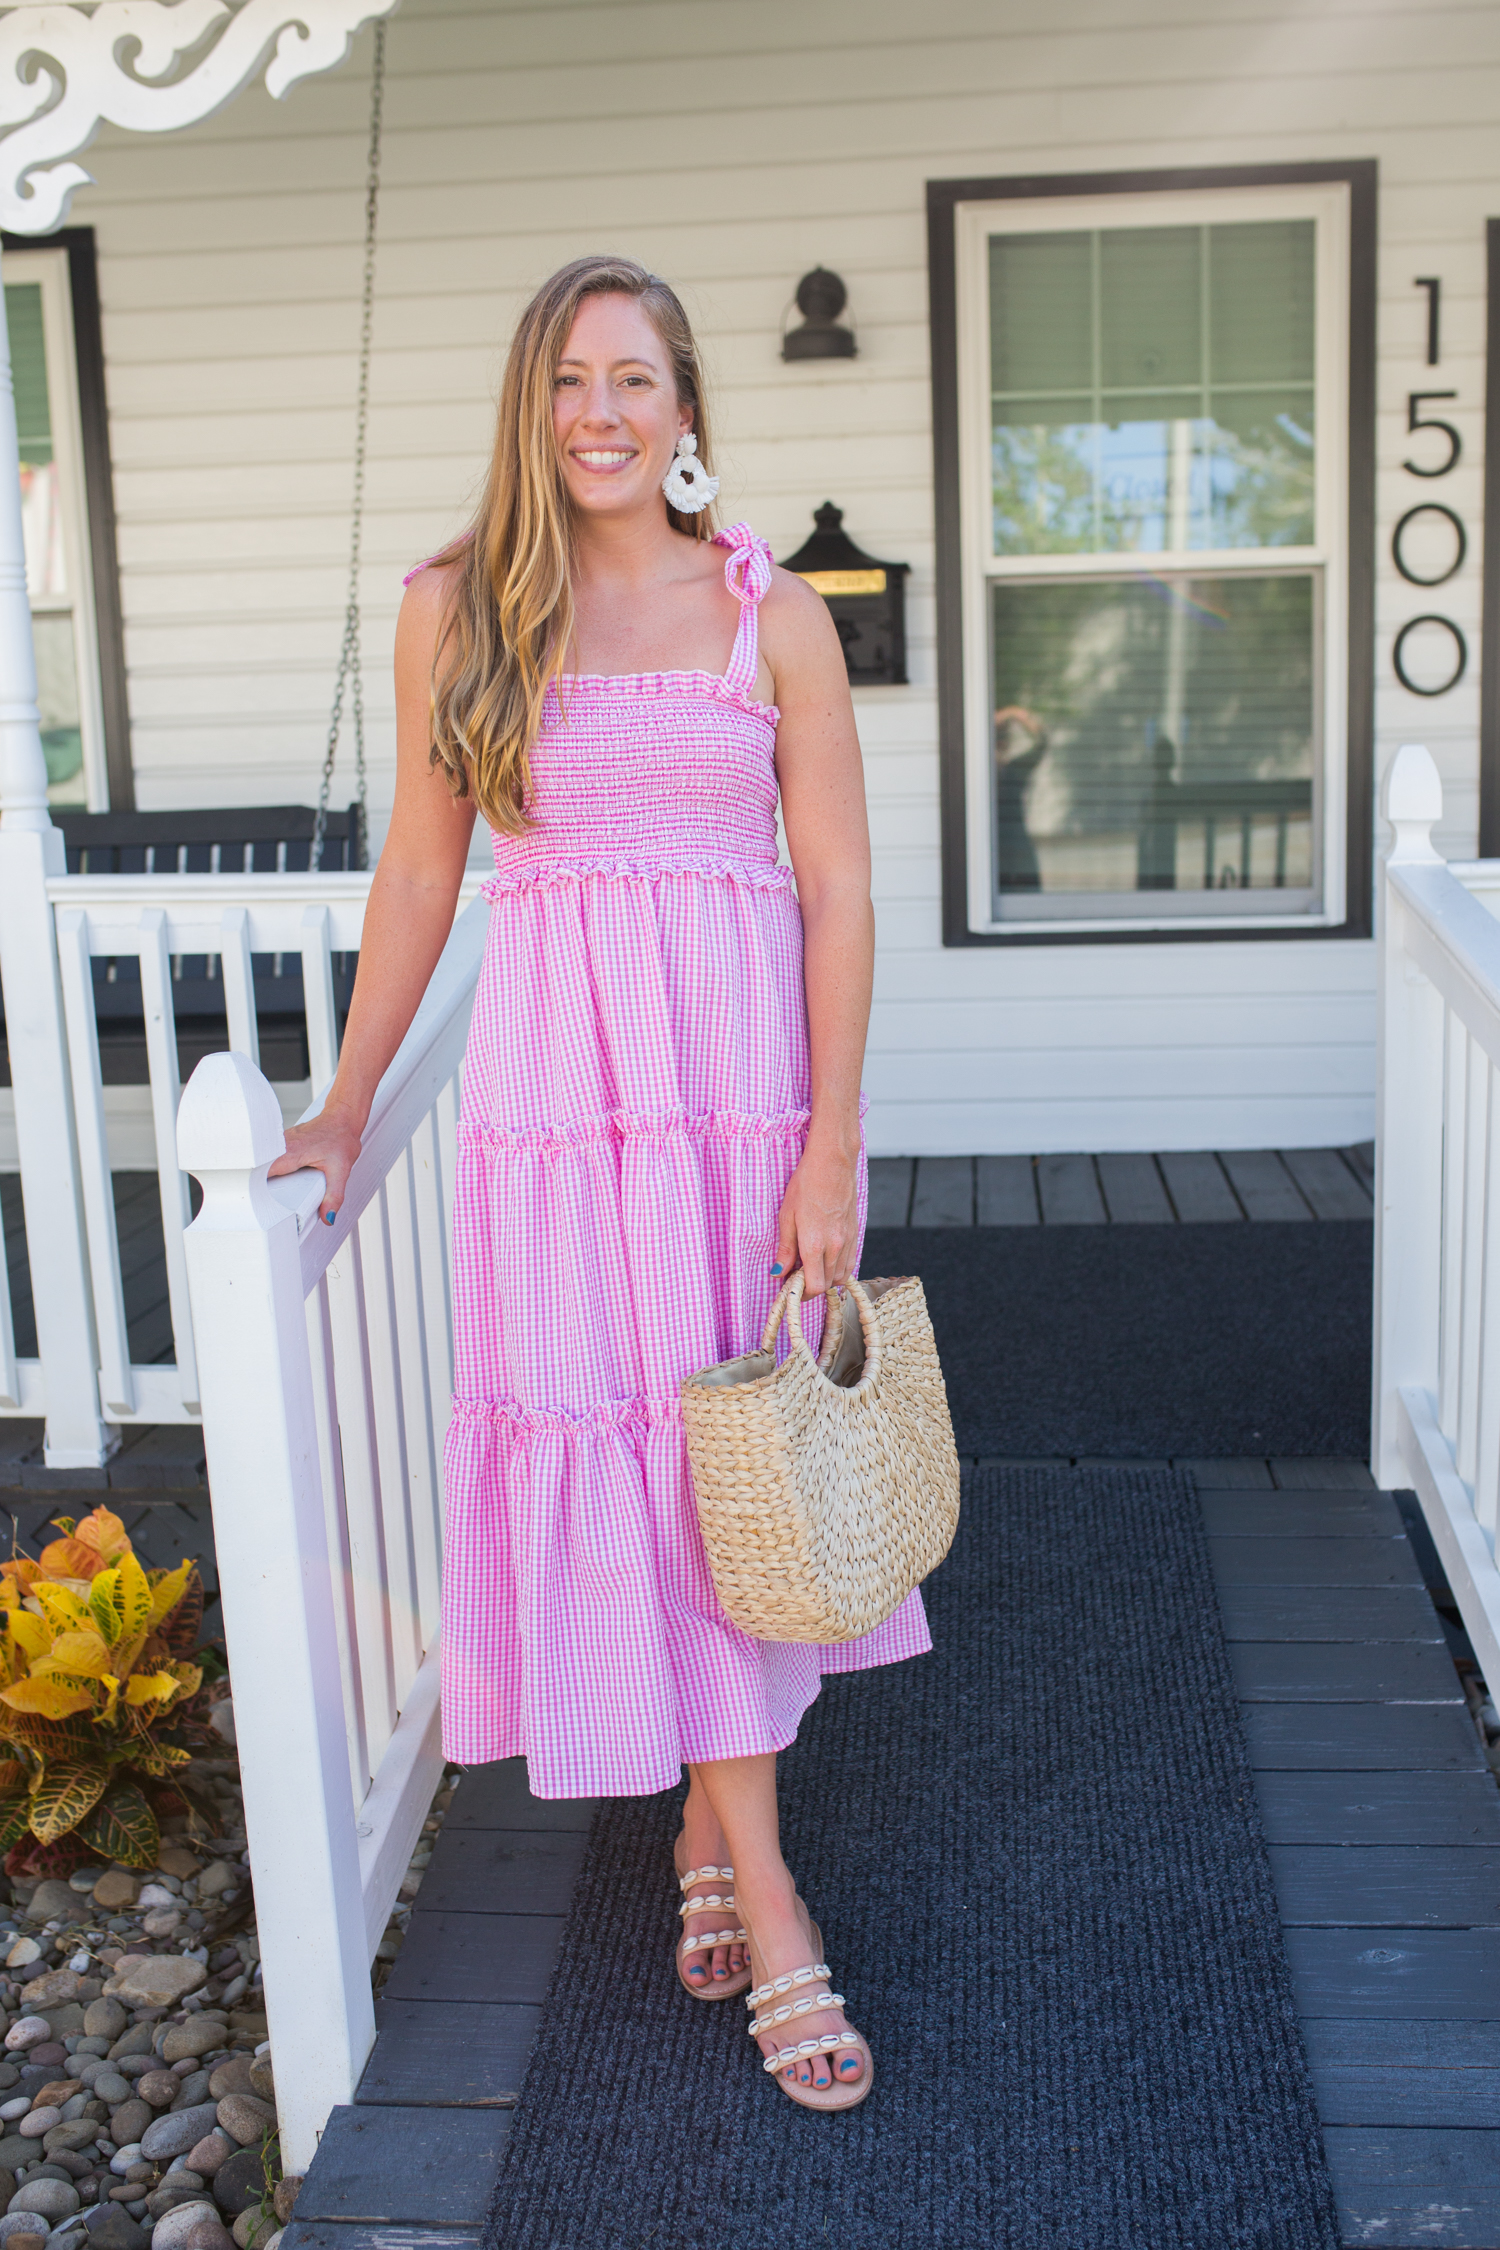 Gingham Tie Strap Midi Dress / Summer Dress Outfits / Preppy Style / Preppy Outfit / TIe Strap Dress / Casual Summer Dresses / Cute Dresses for Summer - Sunshine Style, A Preppy Fashion and Coastal Lifestyle Blog By Katie